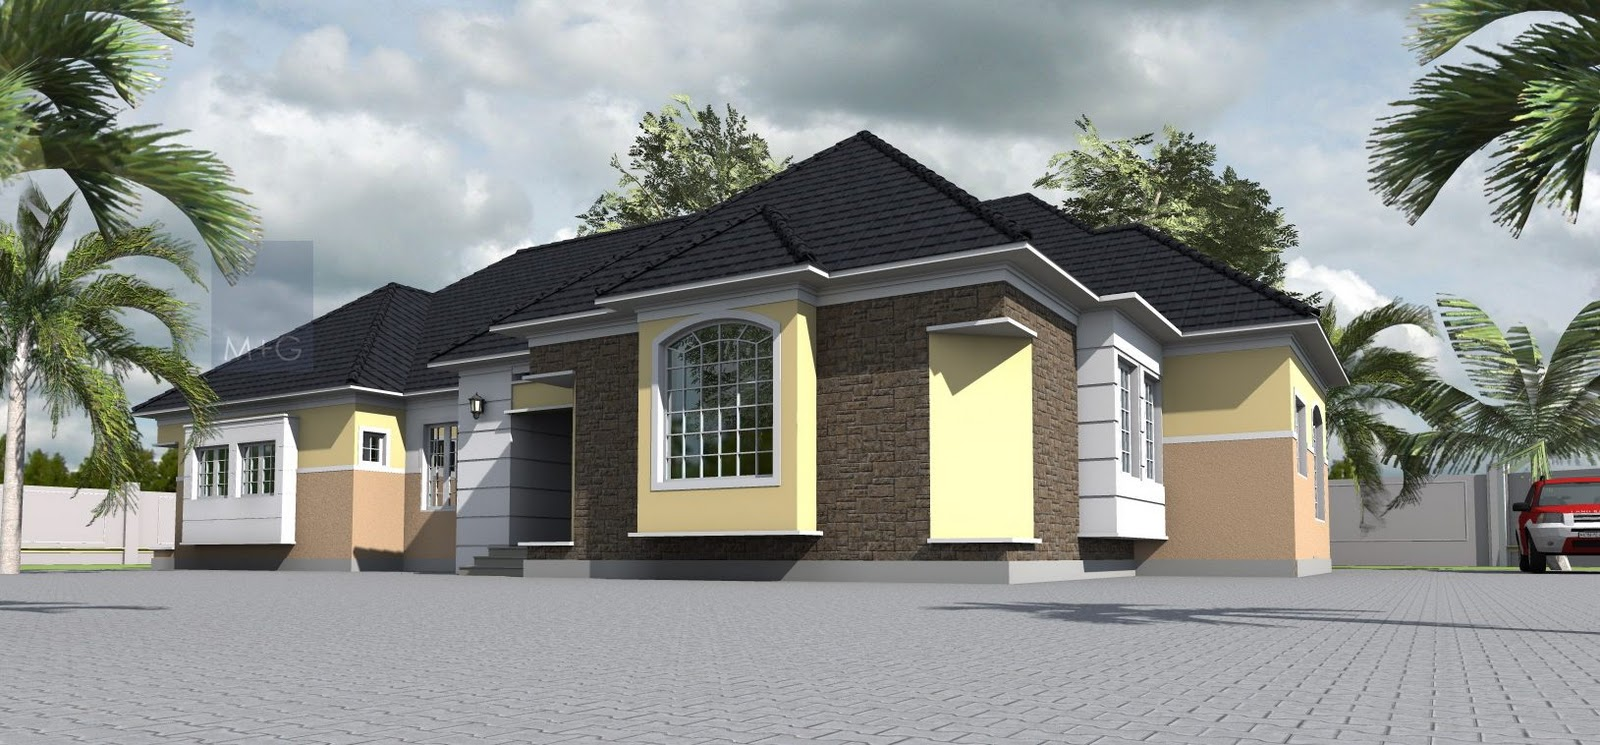 Contemporary nigerian residential architecture 4 bedroom for 4 bedroom house designs in nigeria